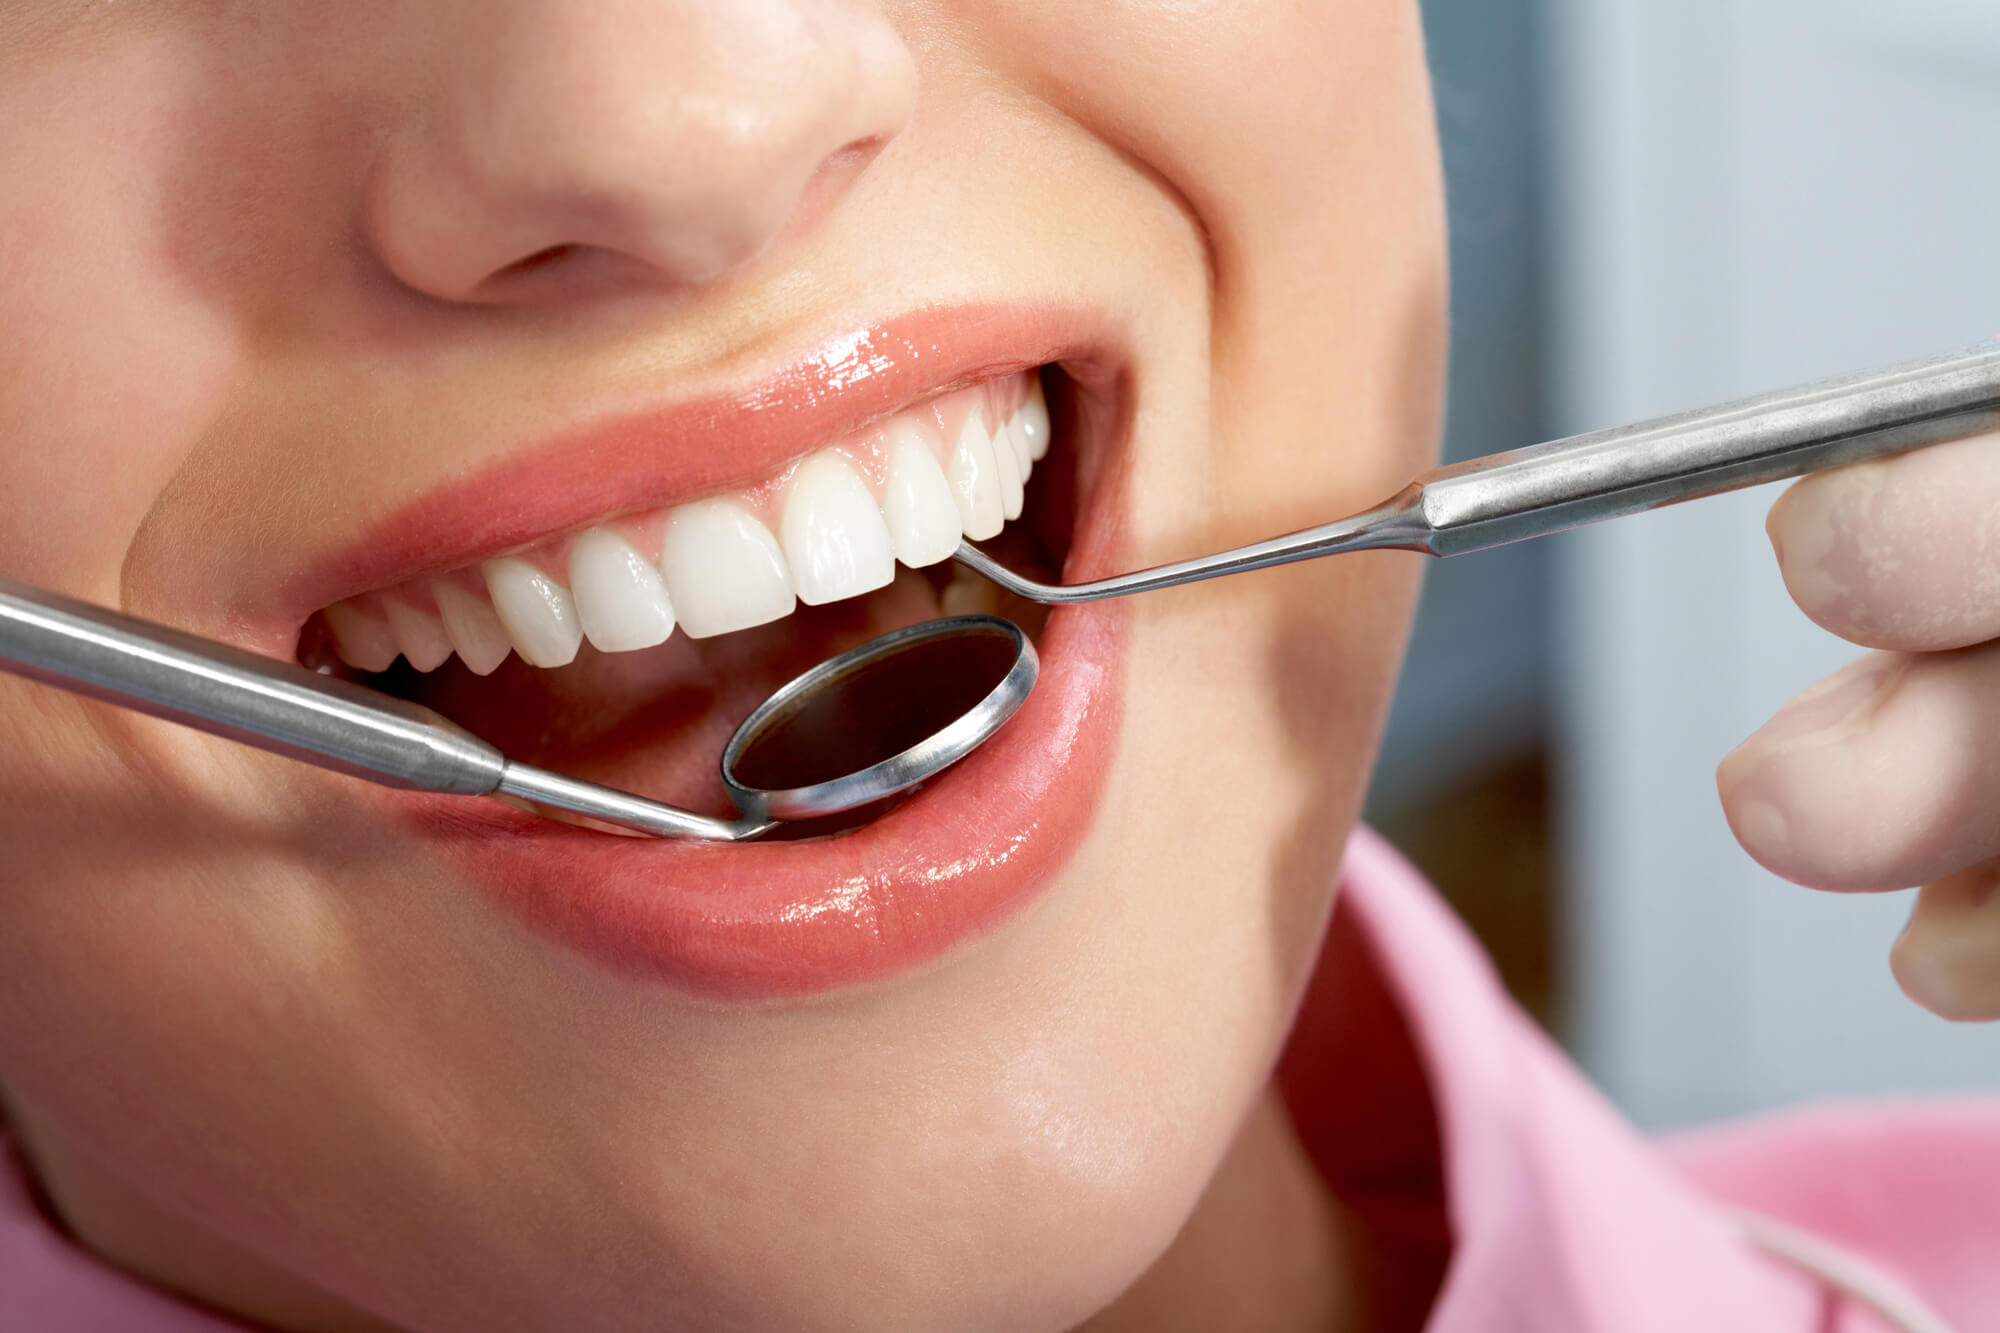 where can i get teeth whitening in cary nc?